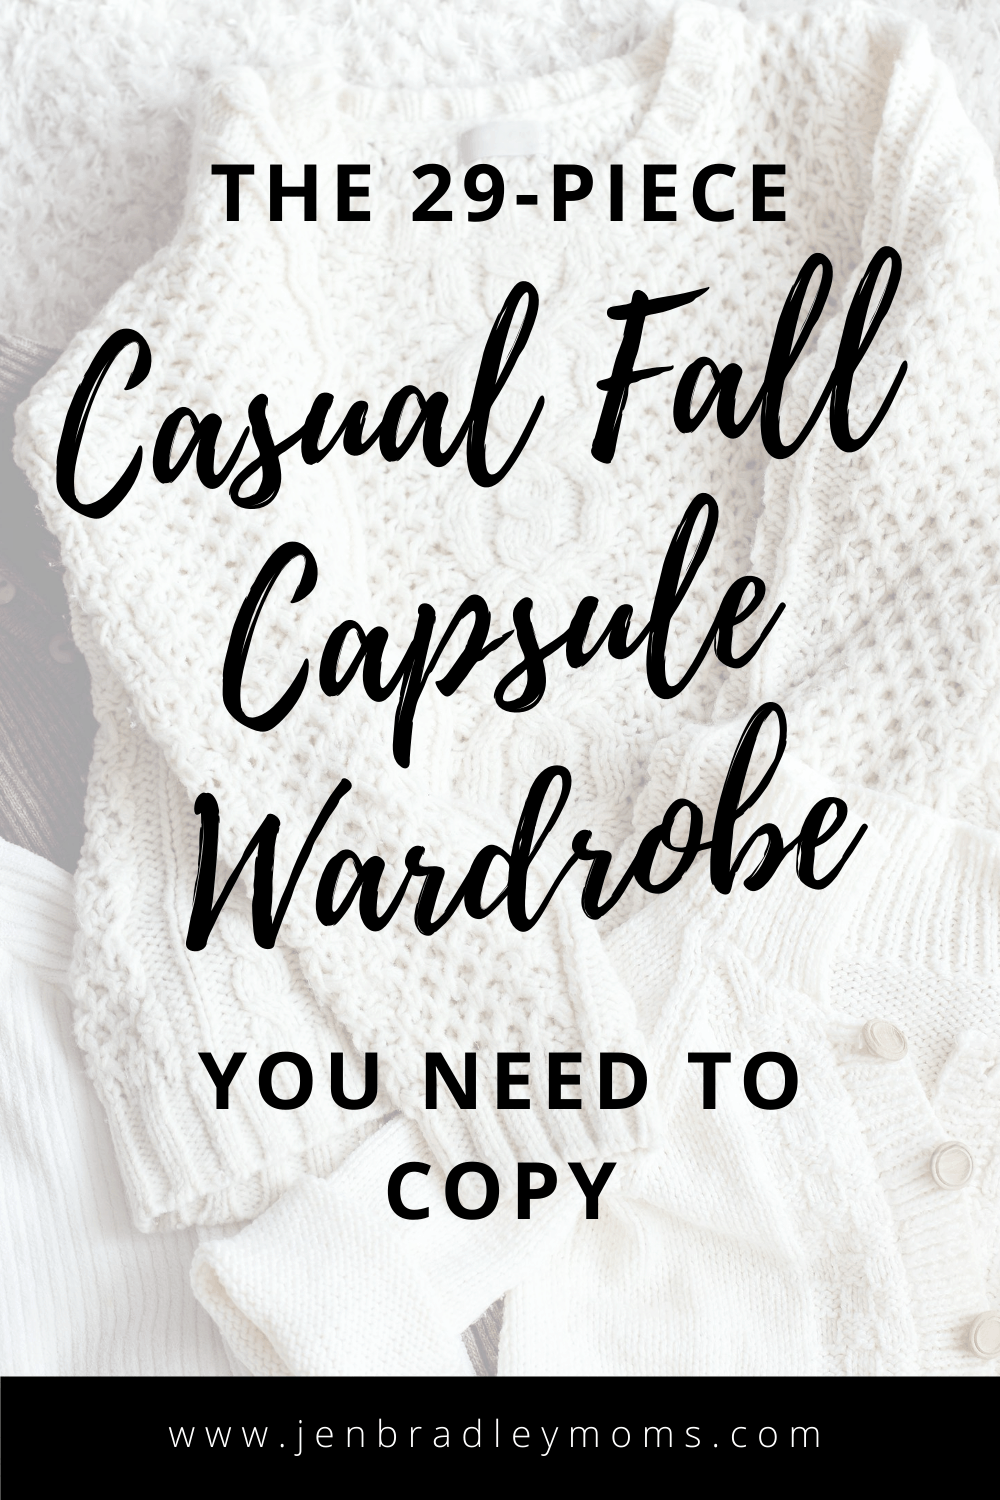 The Best 29-Piece Capsule Wardrobe for Fall You Need to Copy